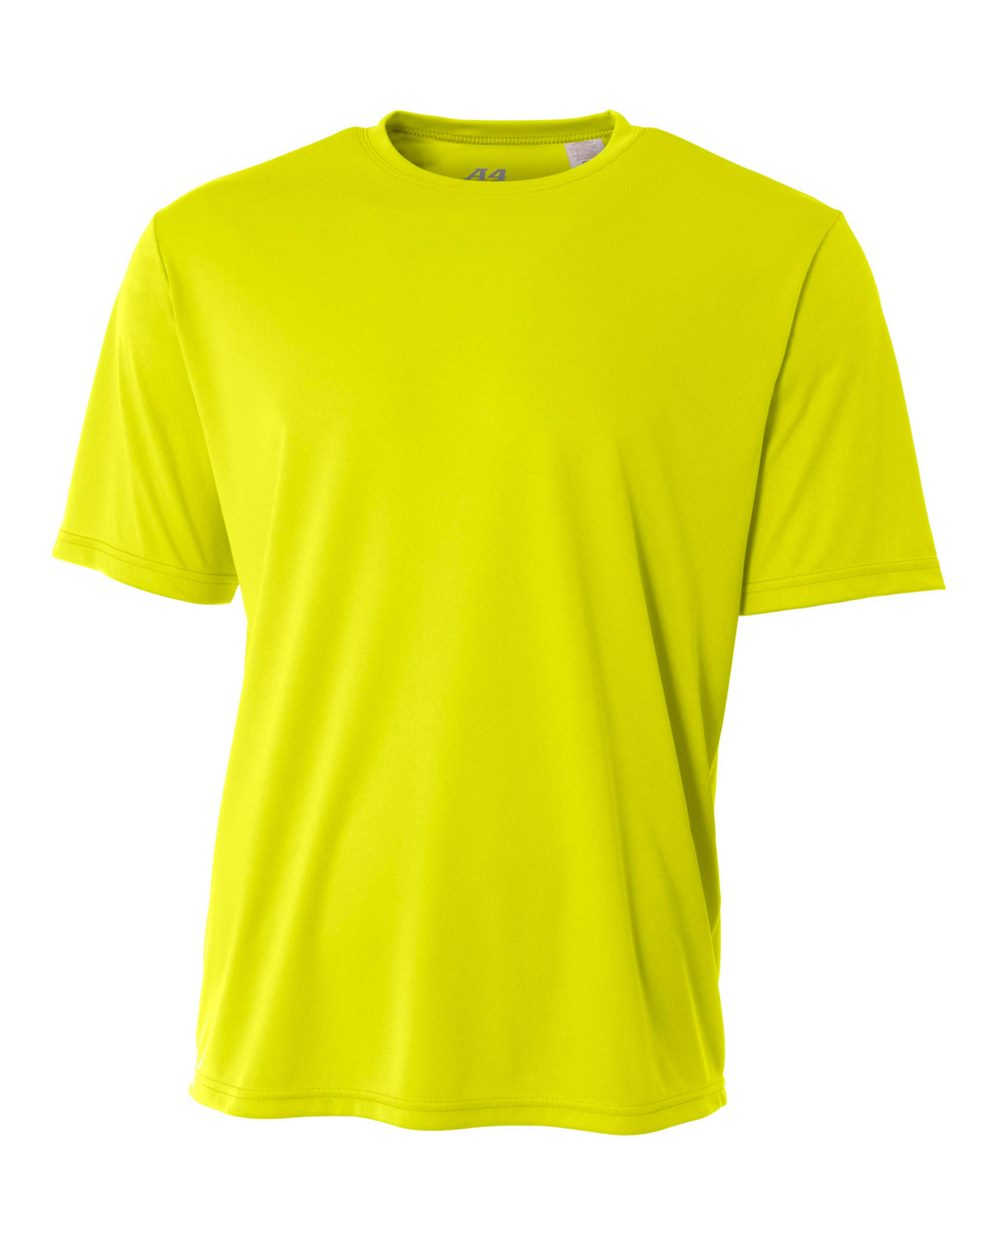 mw-polo-safety-yellow.jpg